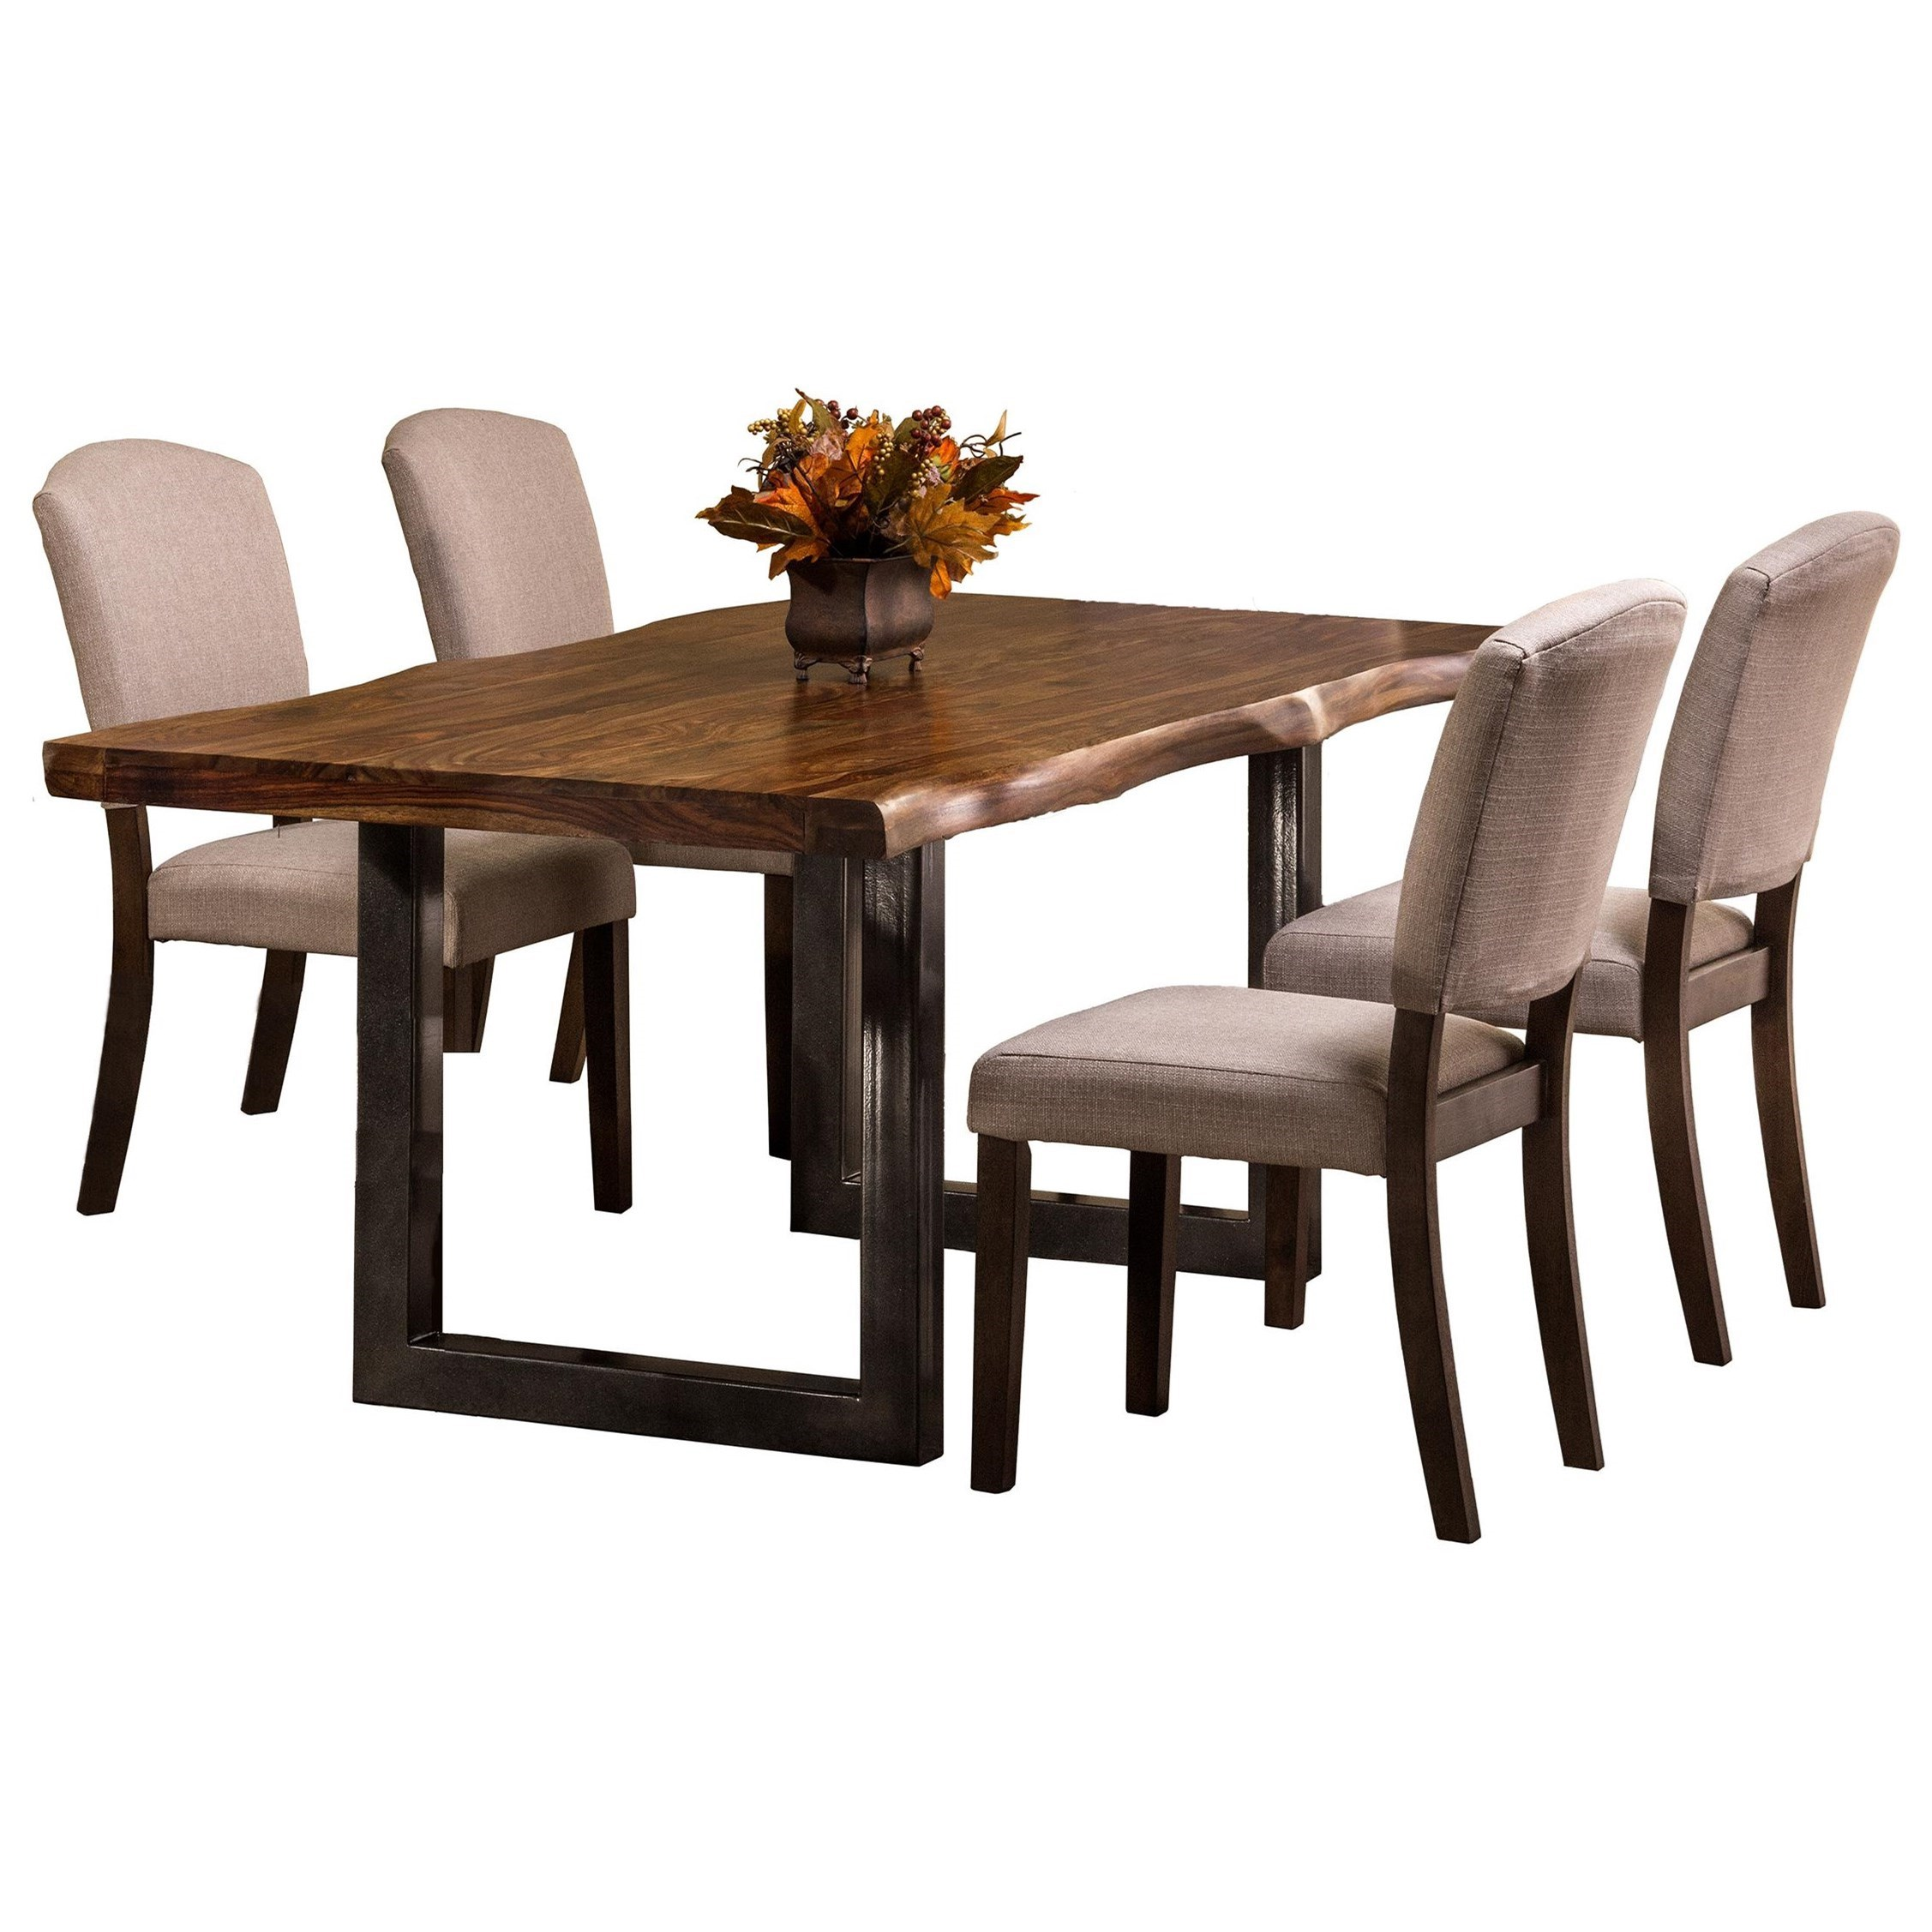 Hillsdale emerson natural sheesham wood rectangular dining table olinde 39 s furniture dining - Rectangle kitchen tables ...